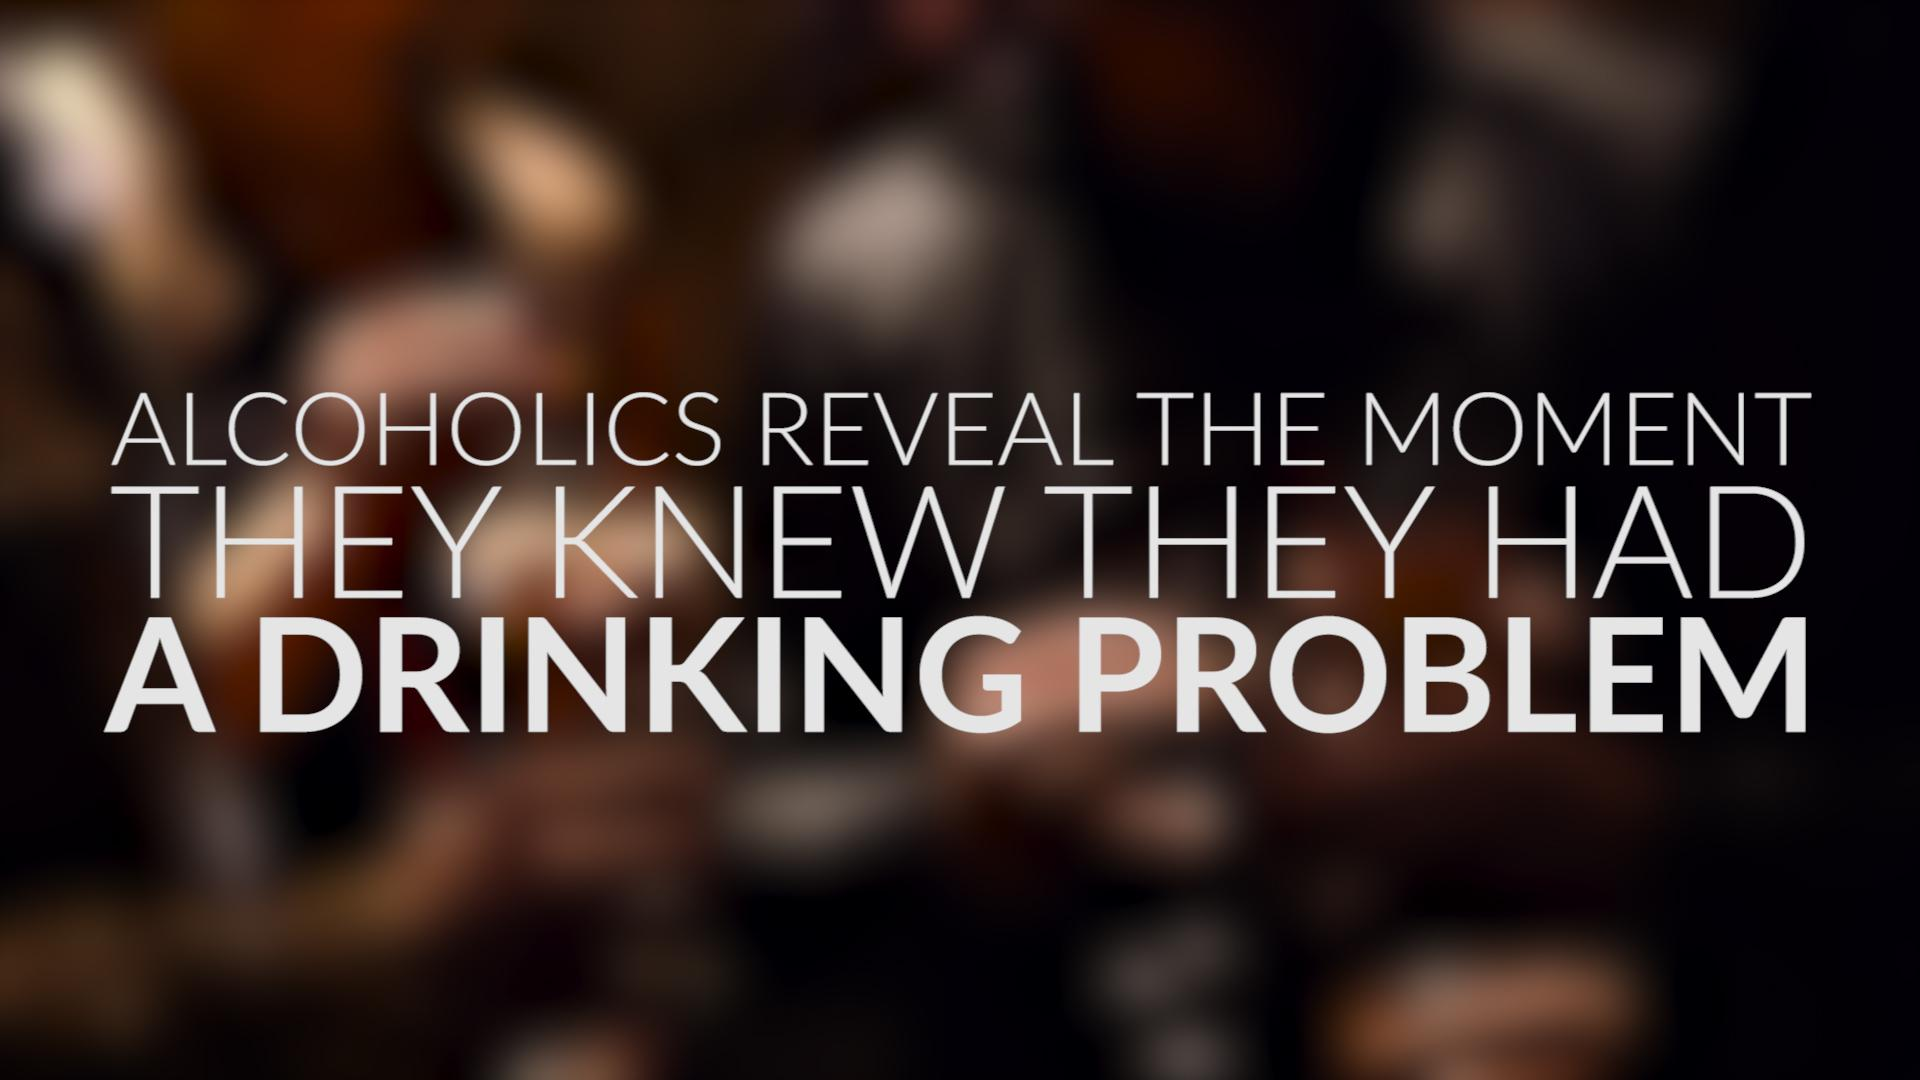 Alcoholics Reveal The Moment They Knew They Had A Drinking Problem